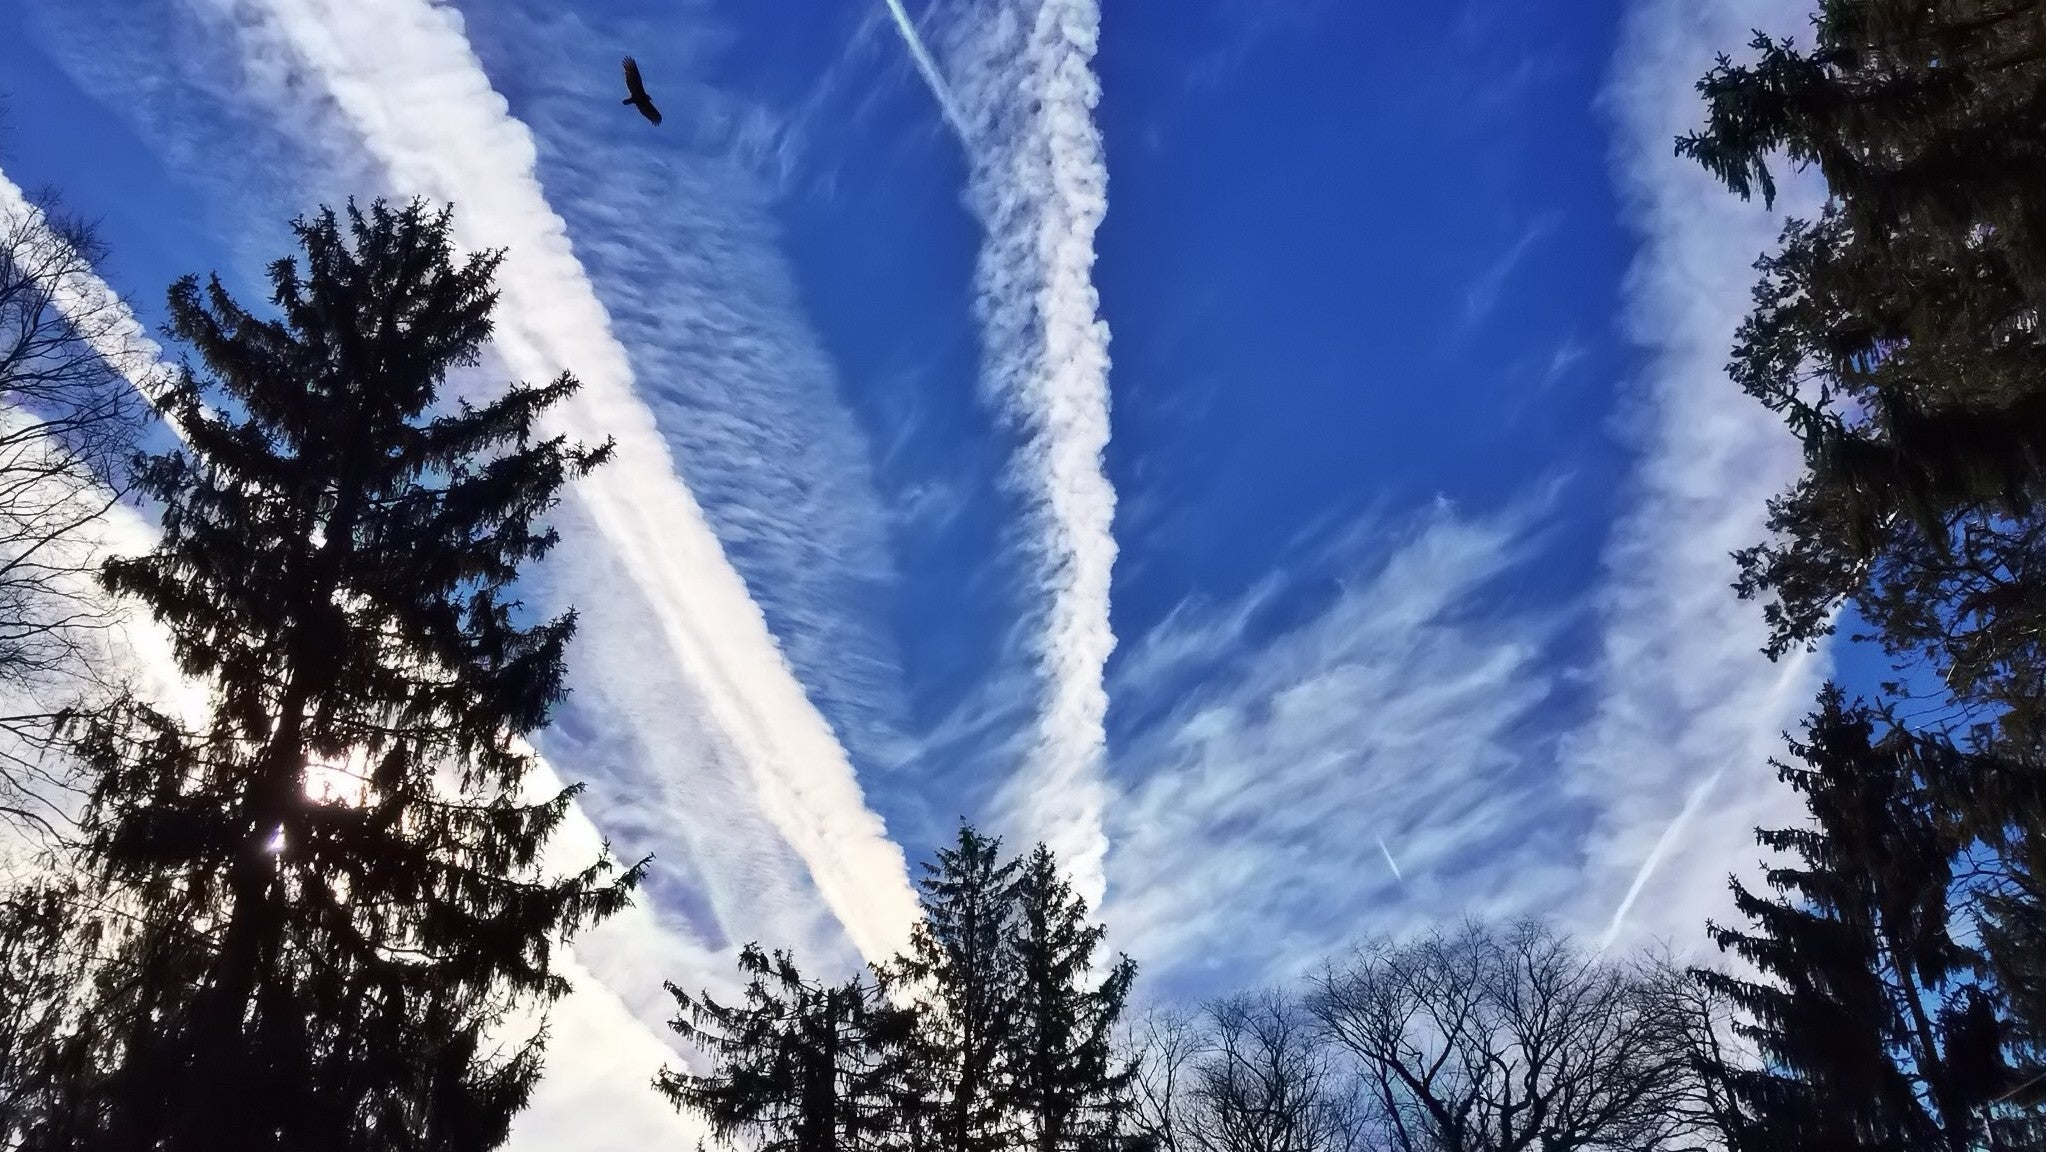 Aeroplane Contrails Have Surprising Effect On The Atmosphere